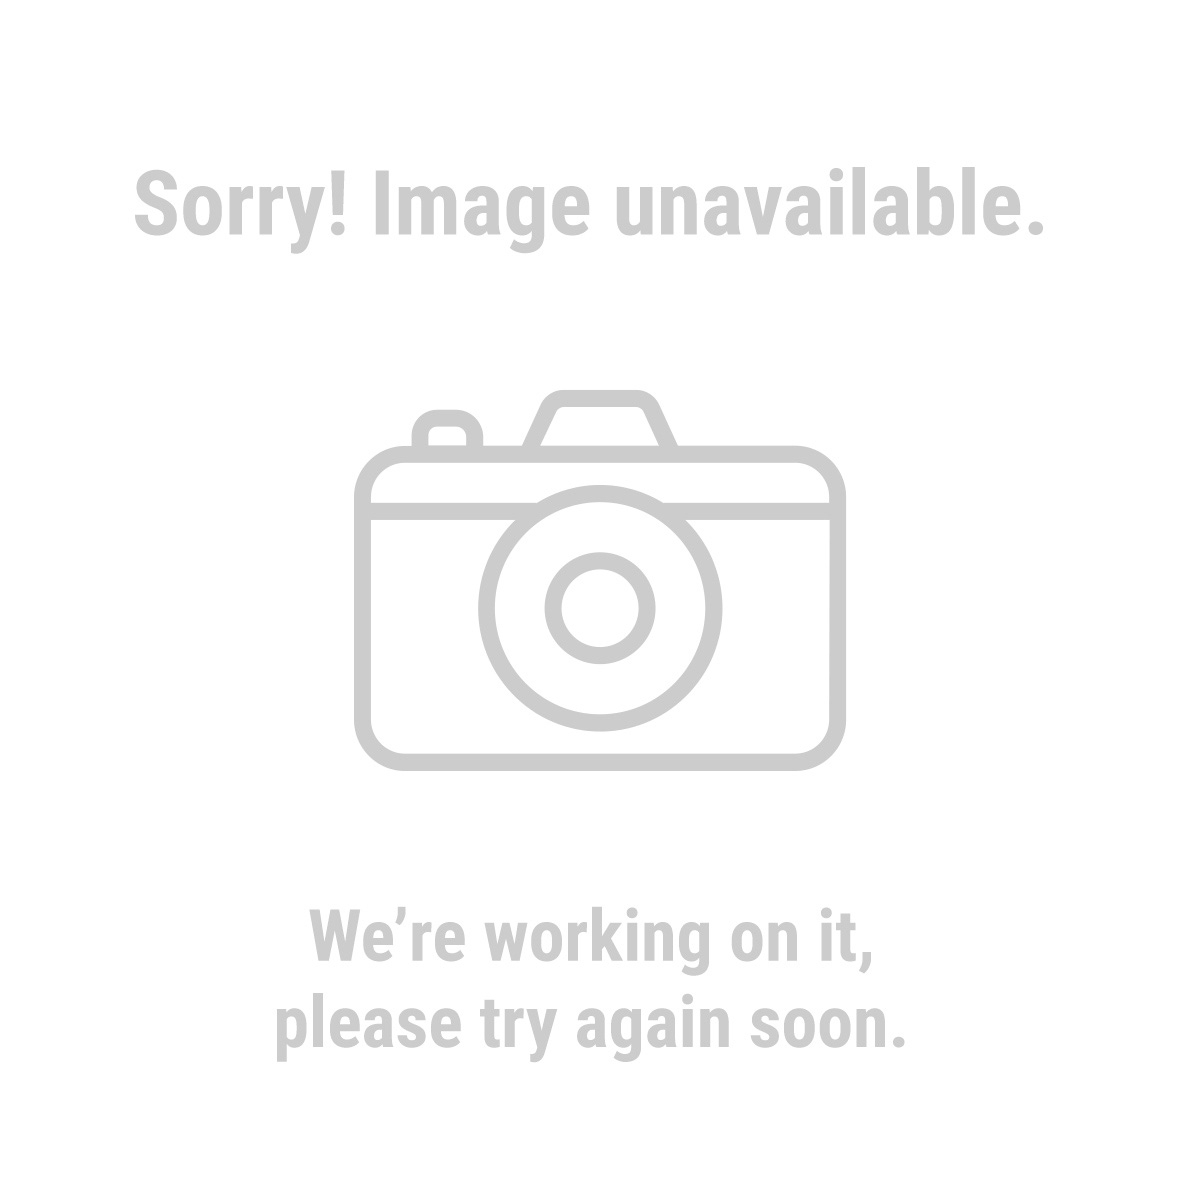 Predator Engines 69727 212 cc OHV Horizontal Shaft Gas Engine - EPA & CARB